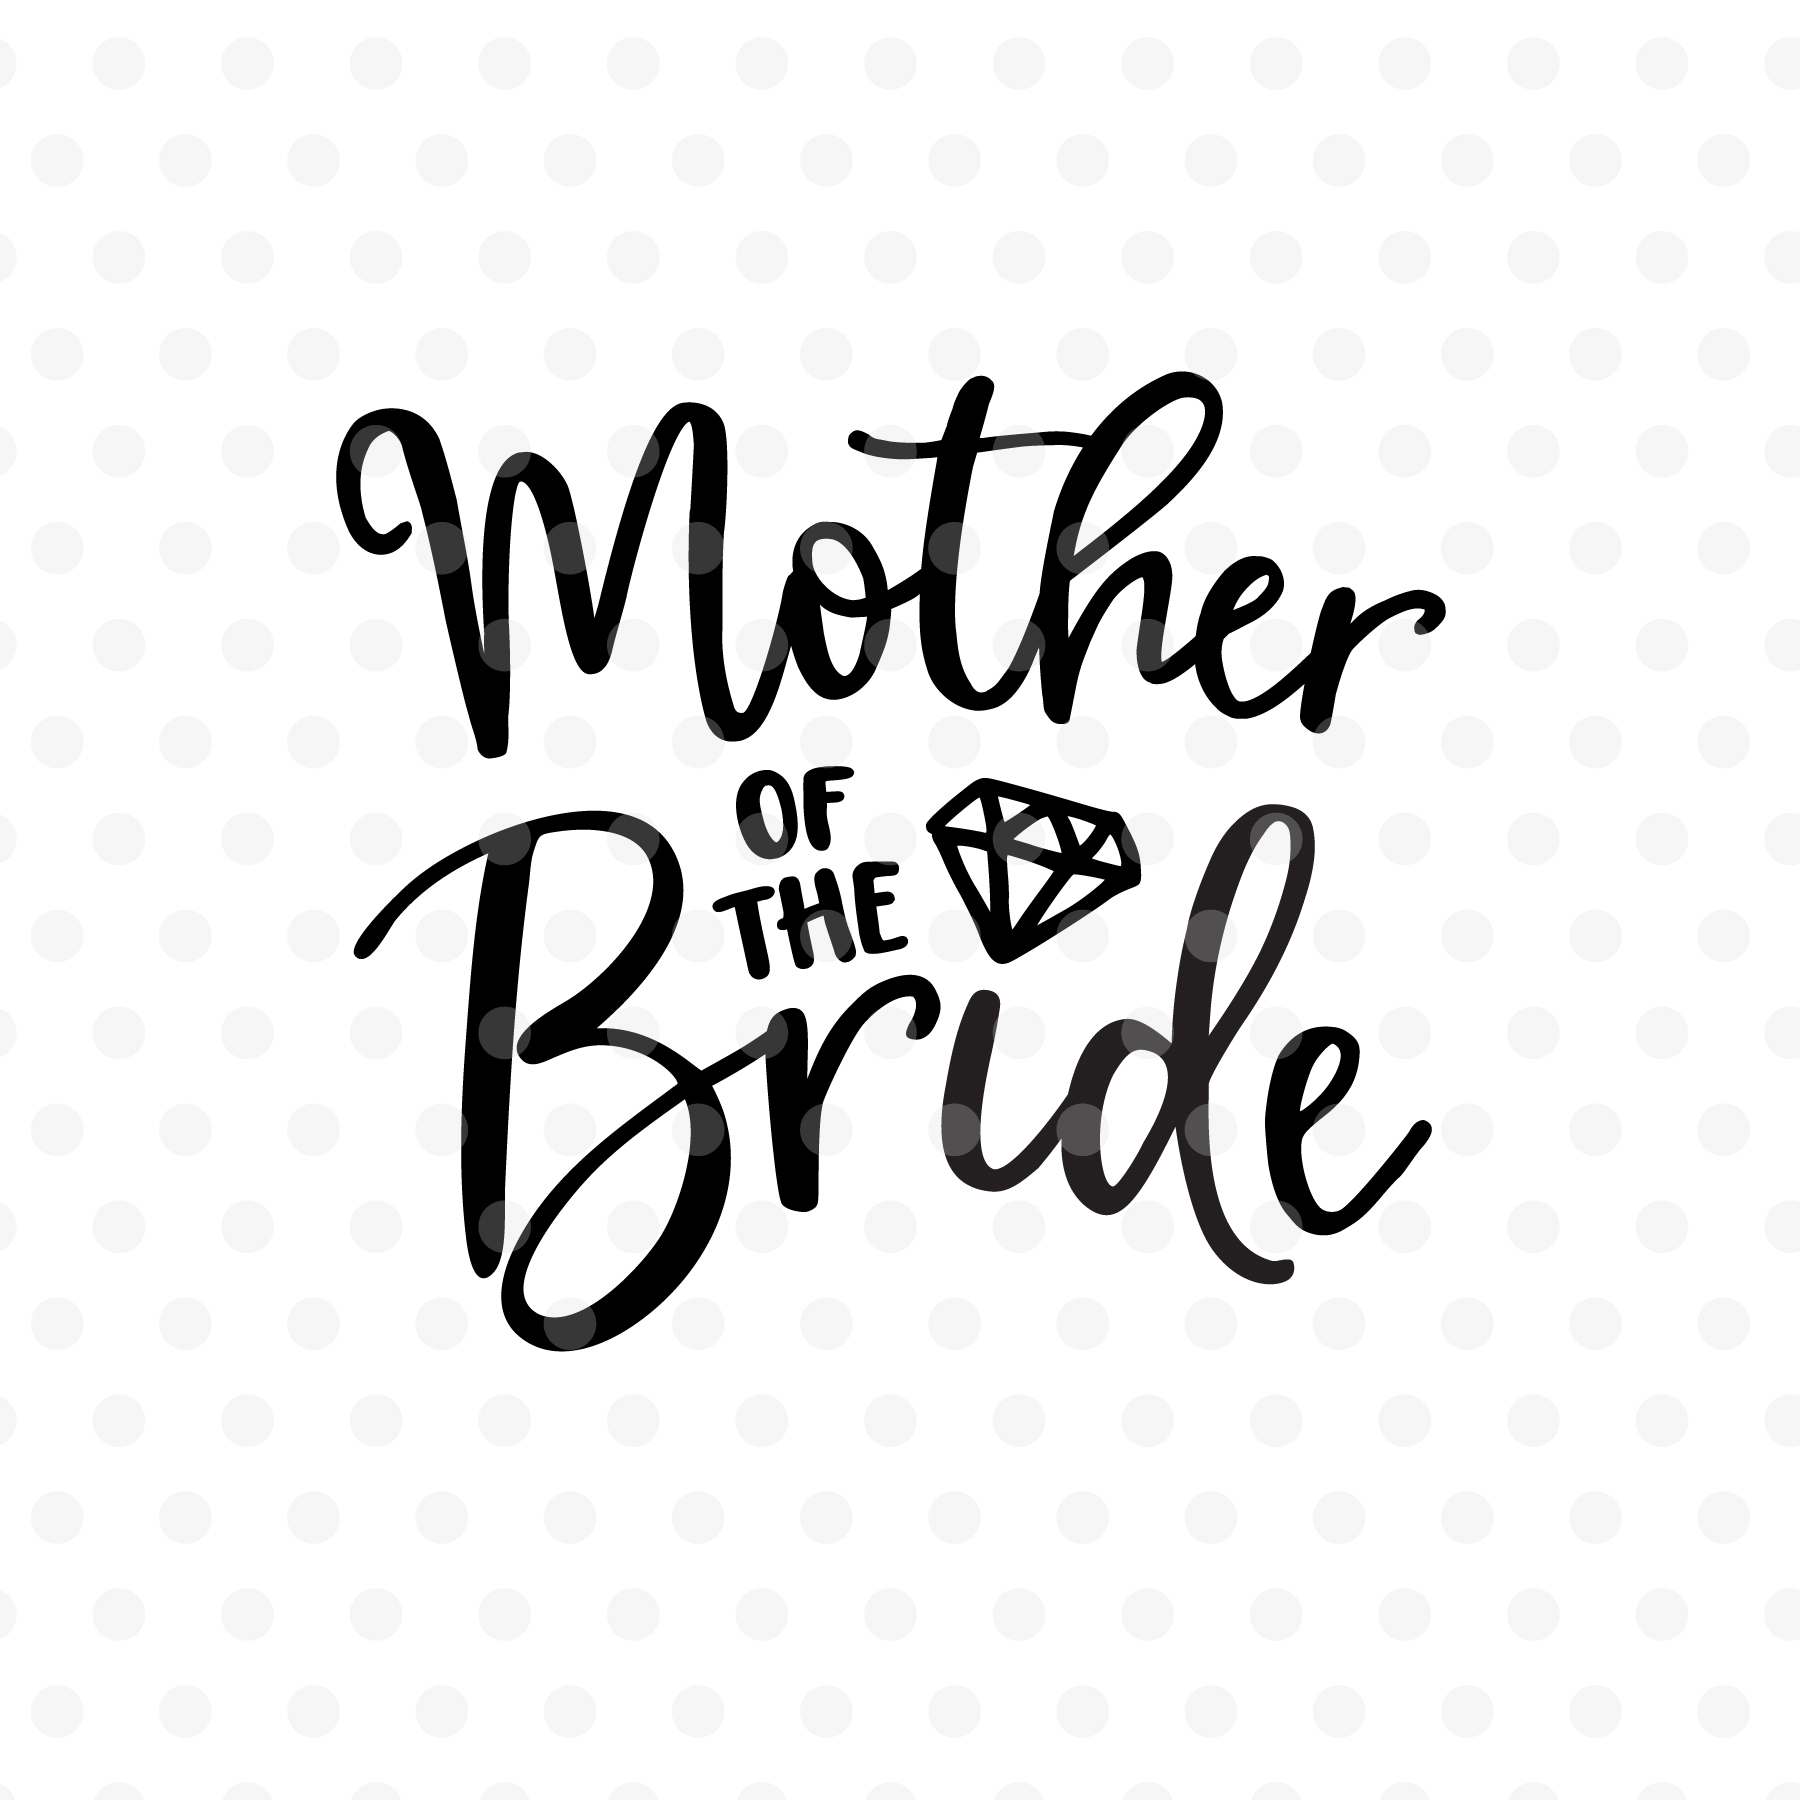 Mother of the Bride wedding SVG, EPS, PNG, DXF example image 2